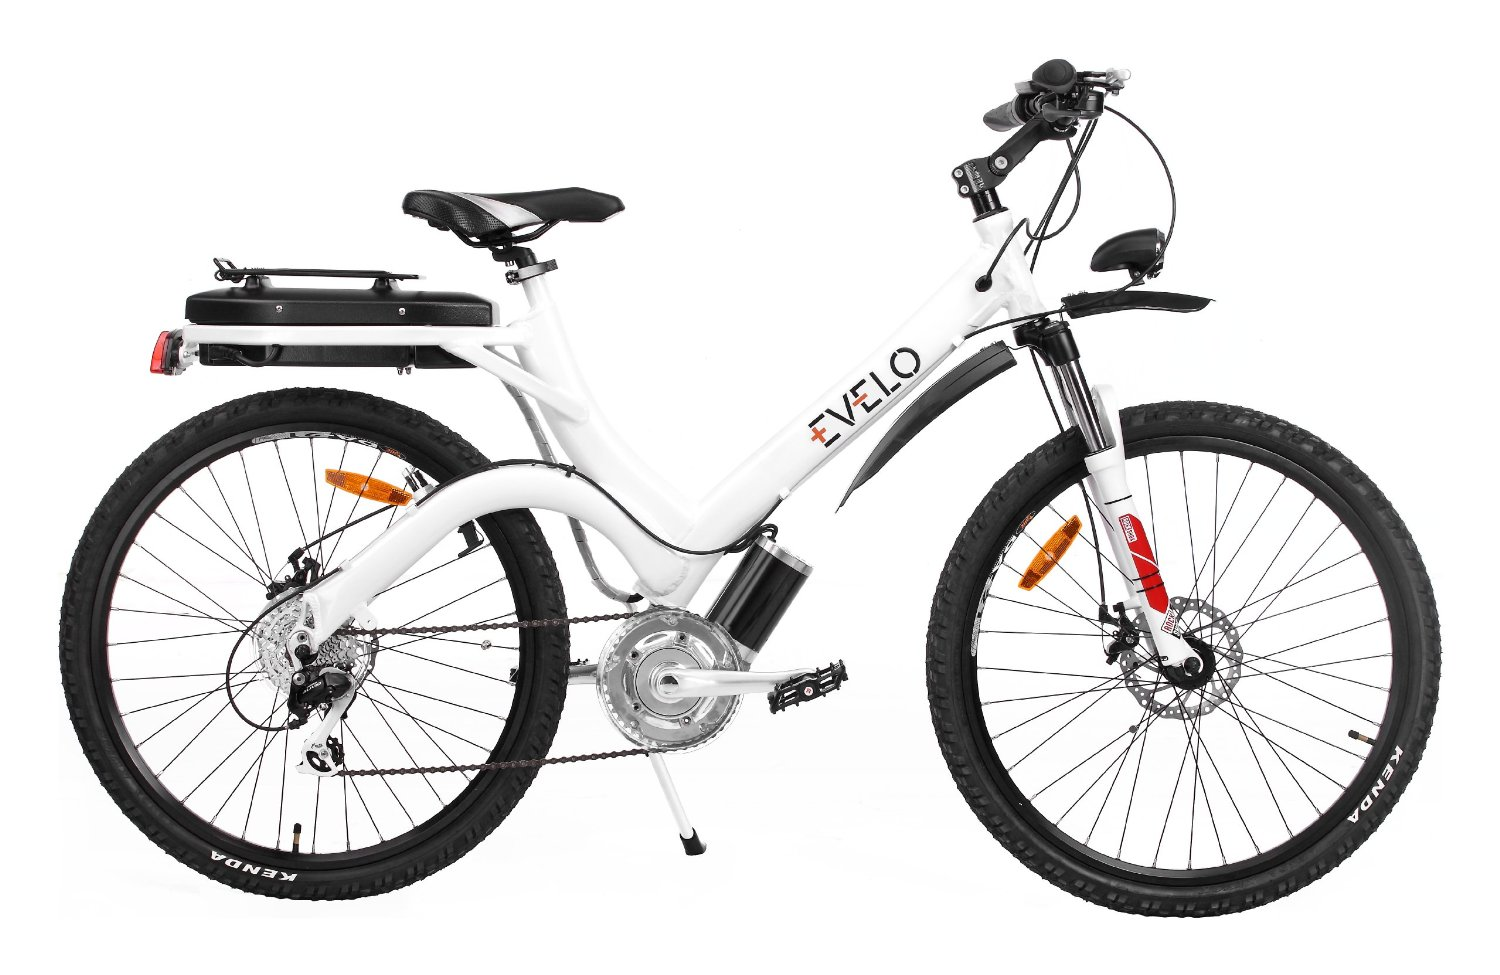 Evelo Aurora Premium E Bike With 8 Speed Drivetrain